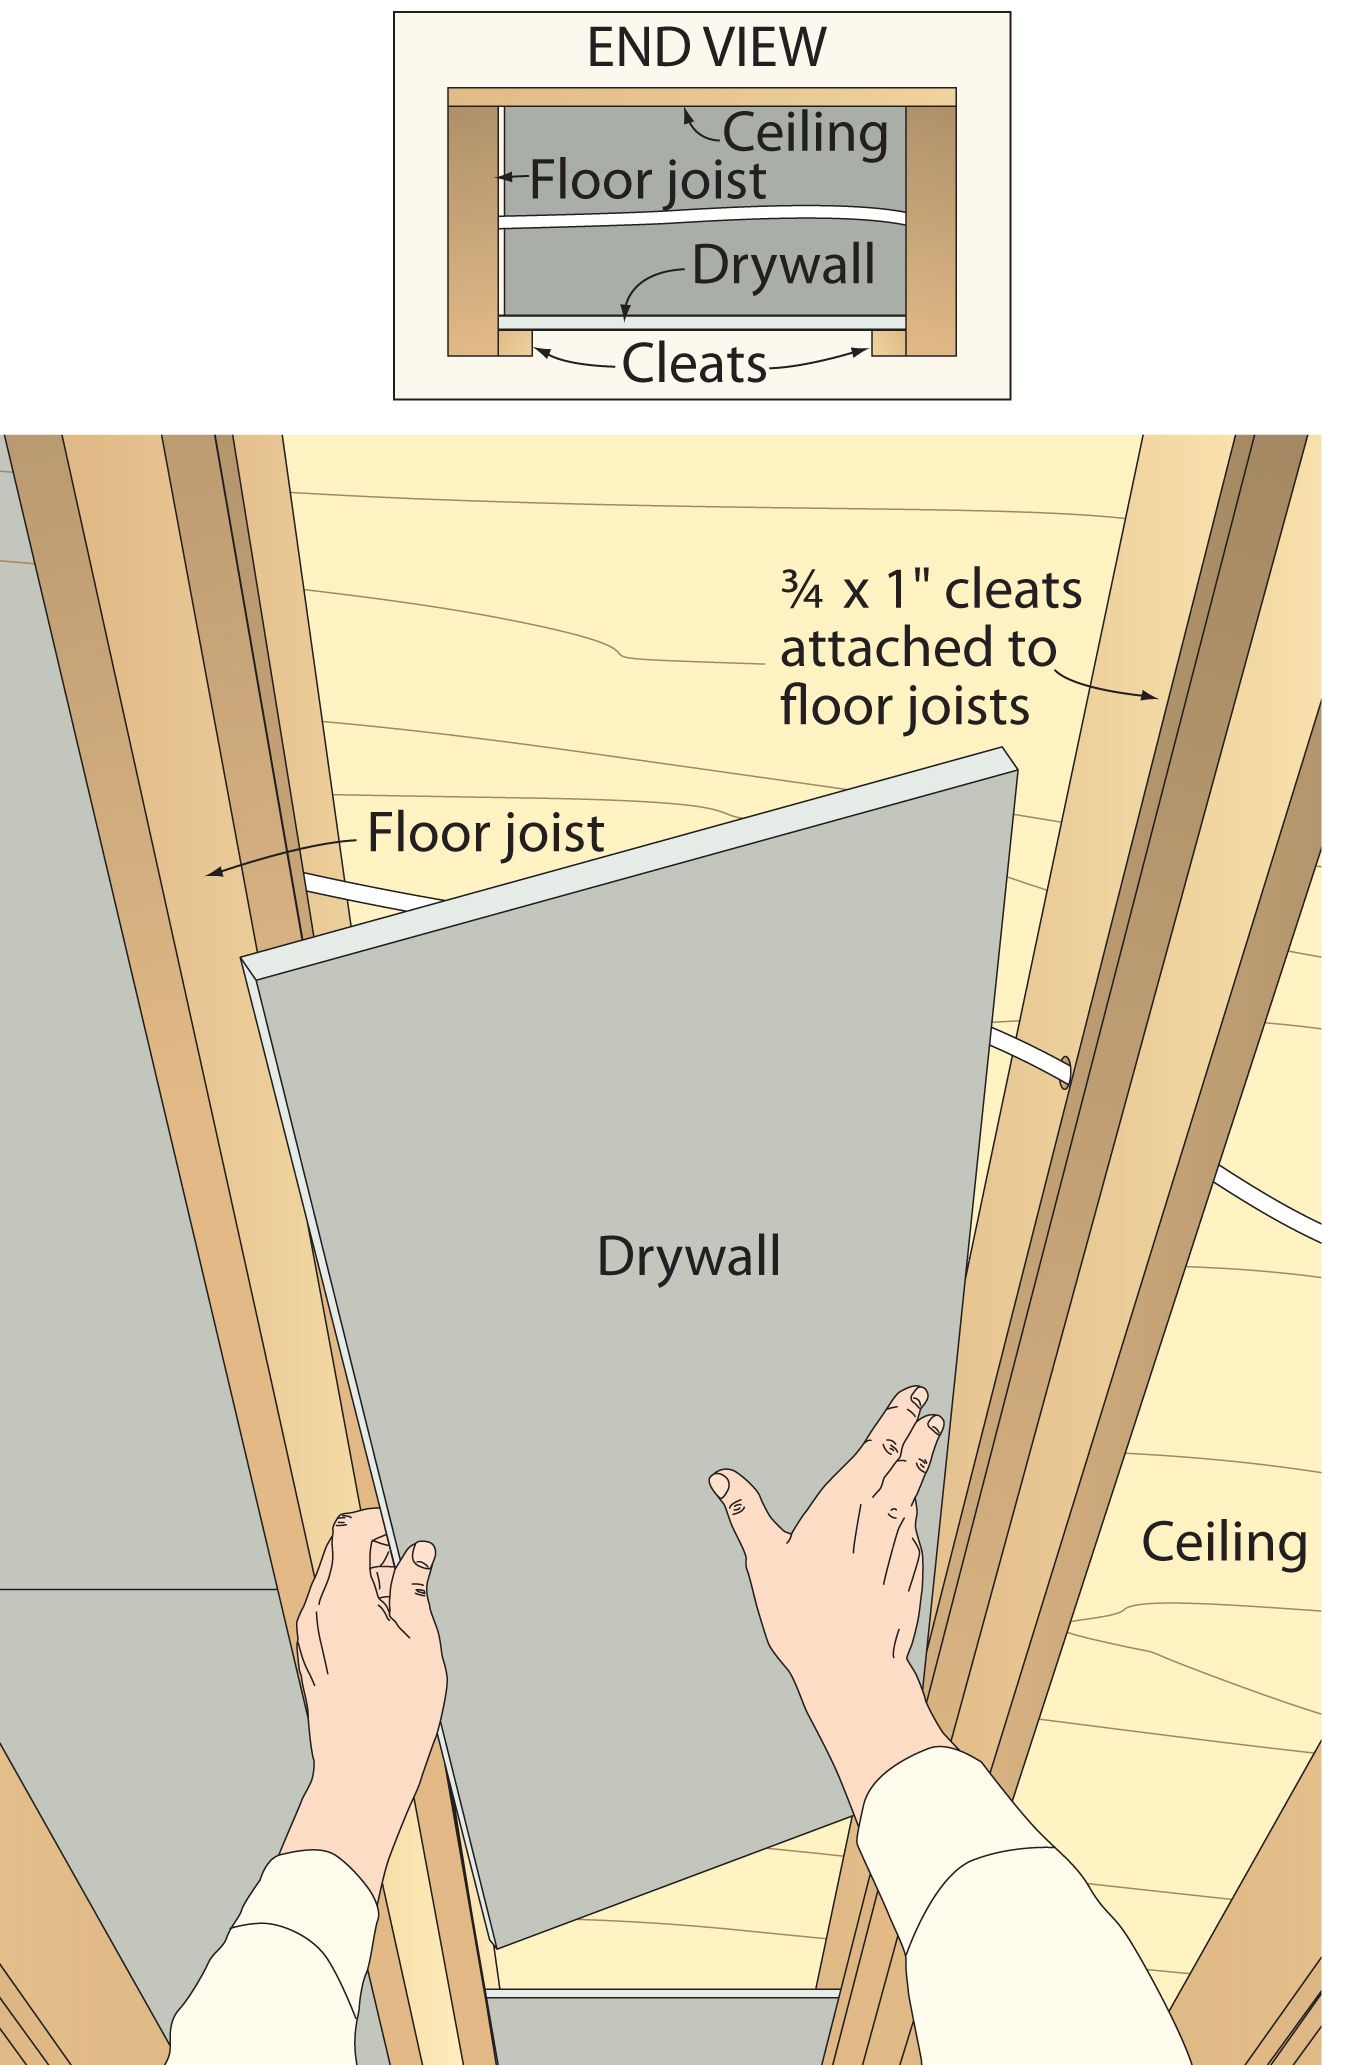 How to hang drywall on a ceiling - Basement Ceilings